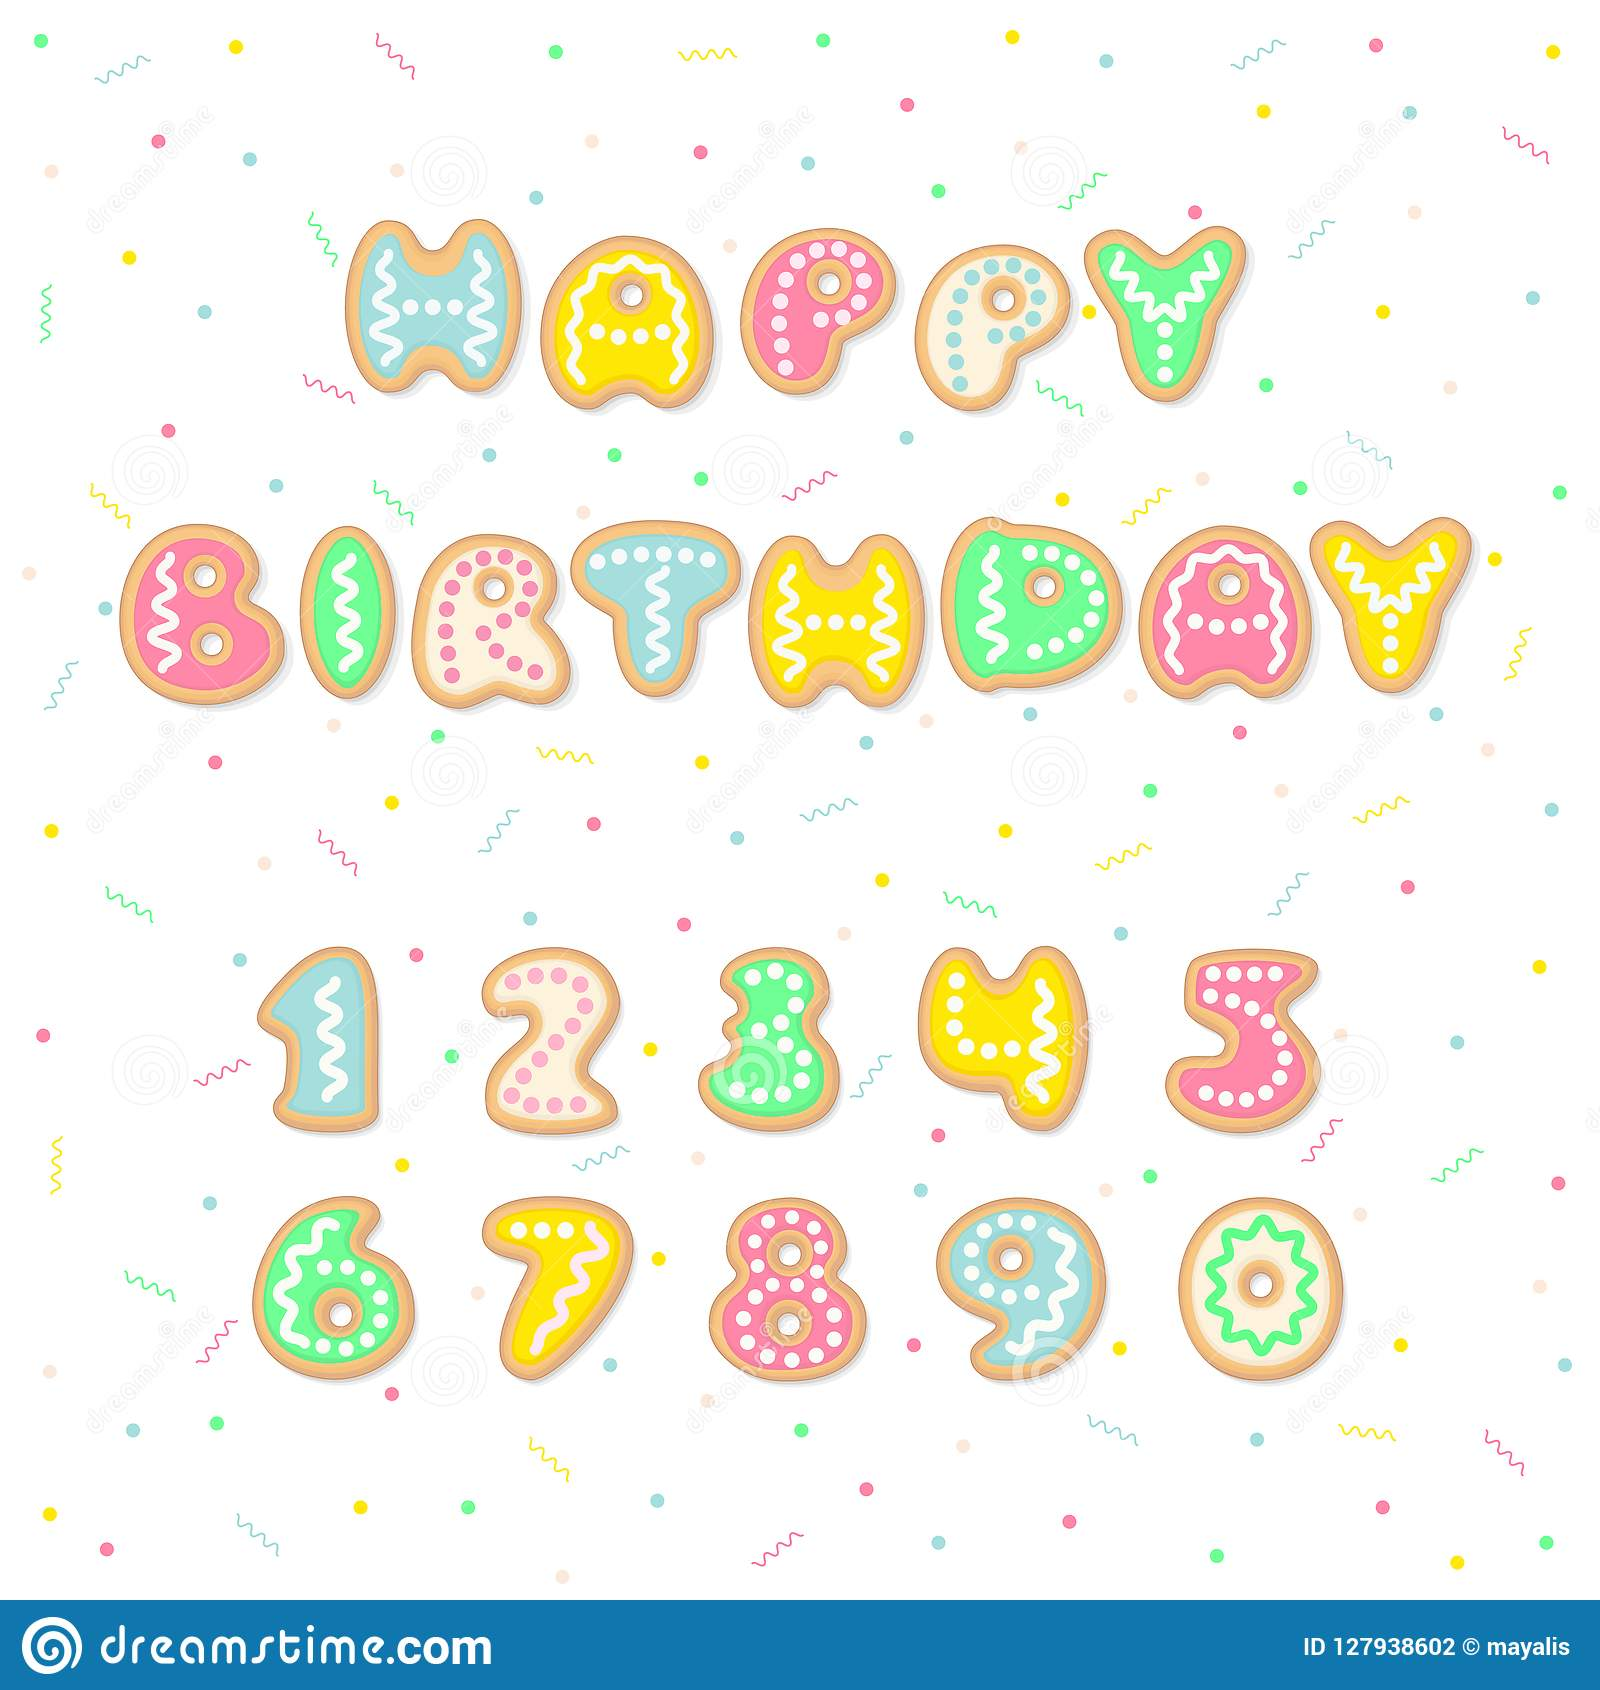 happy birthday greeting card with cartoon cookies letters forming the words and editable numbers